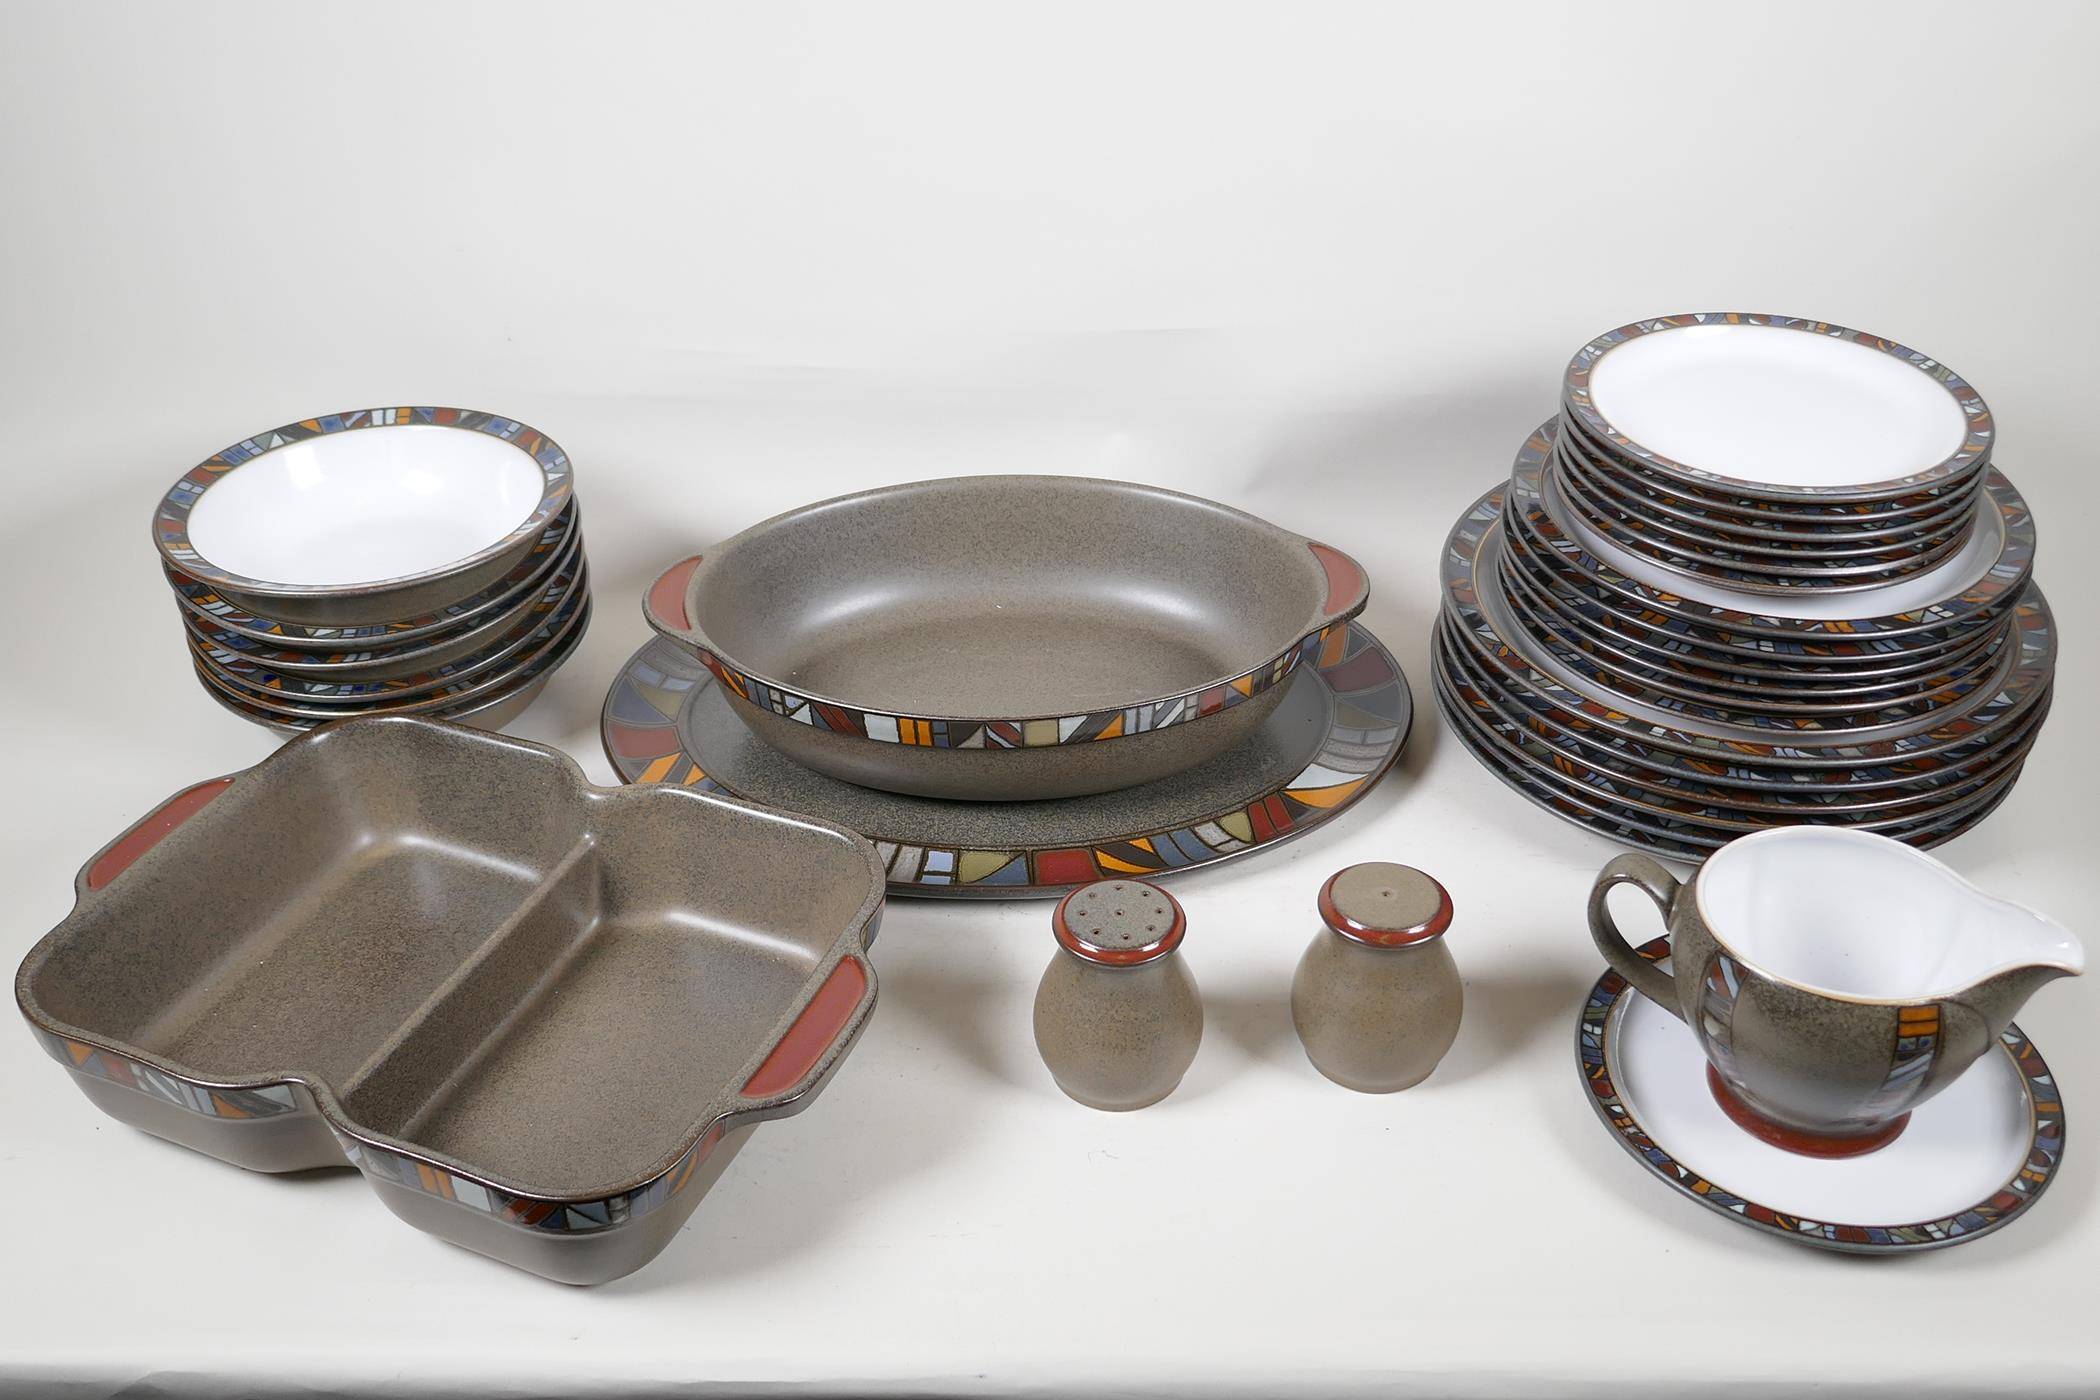 A Denby 'Marrakesh' six setting dinner service, with a pair of condiments, gravy jug, vegetable